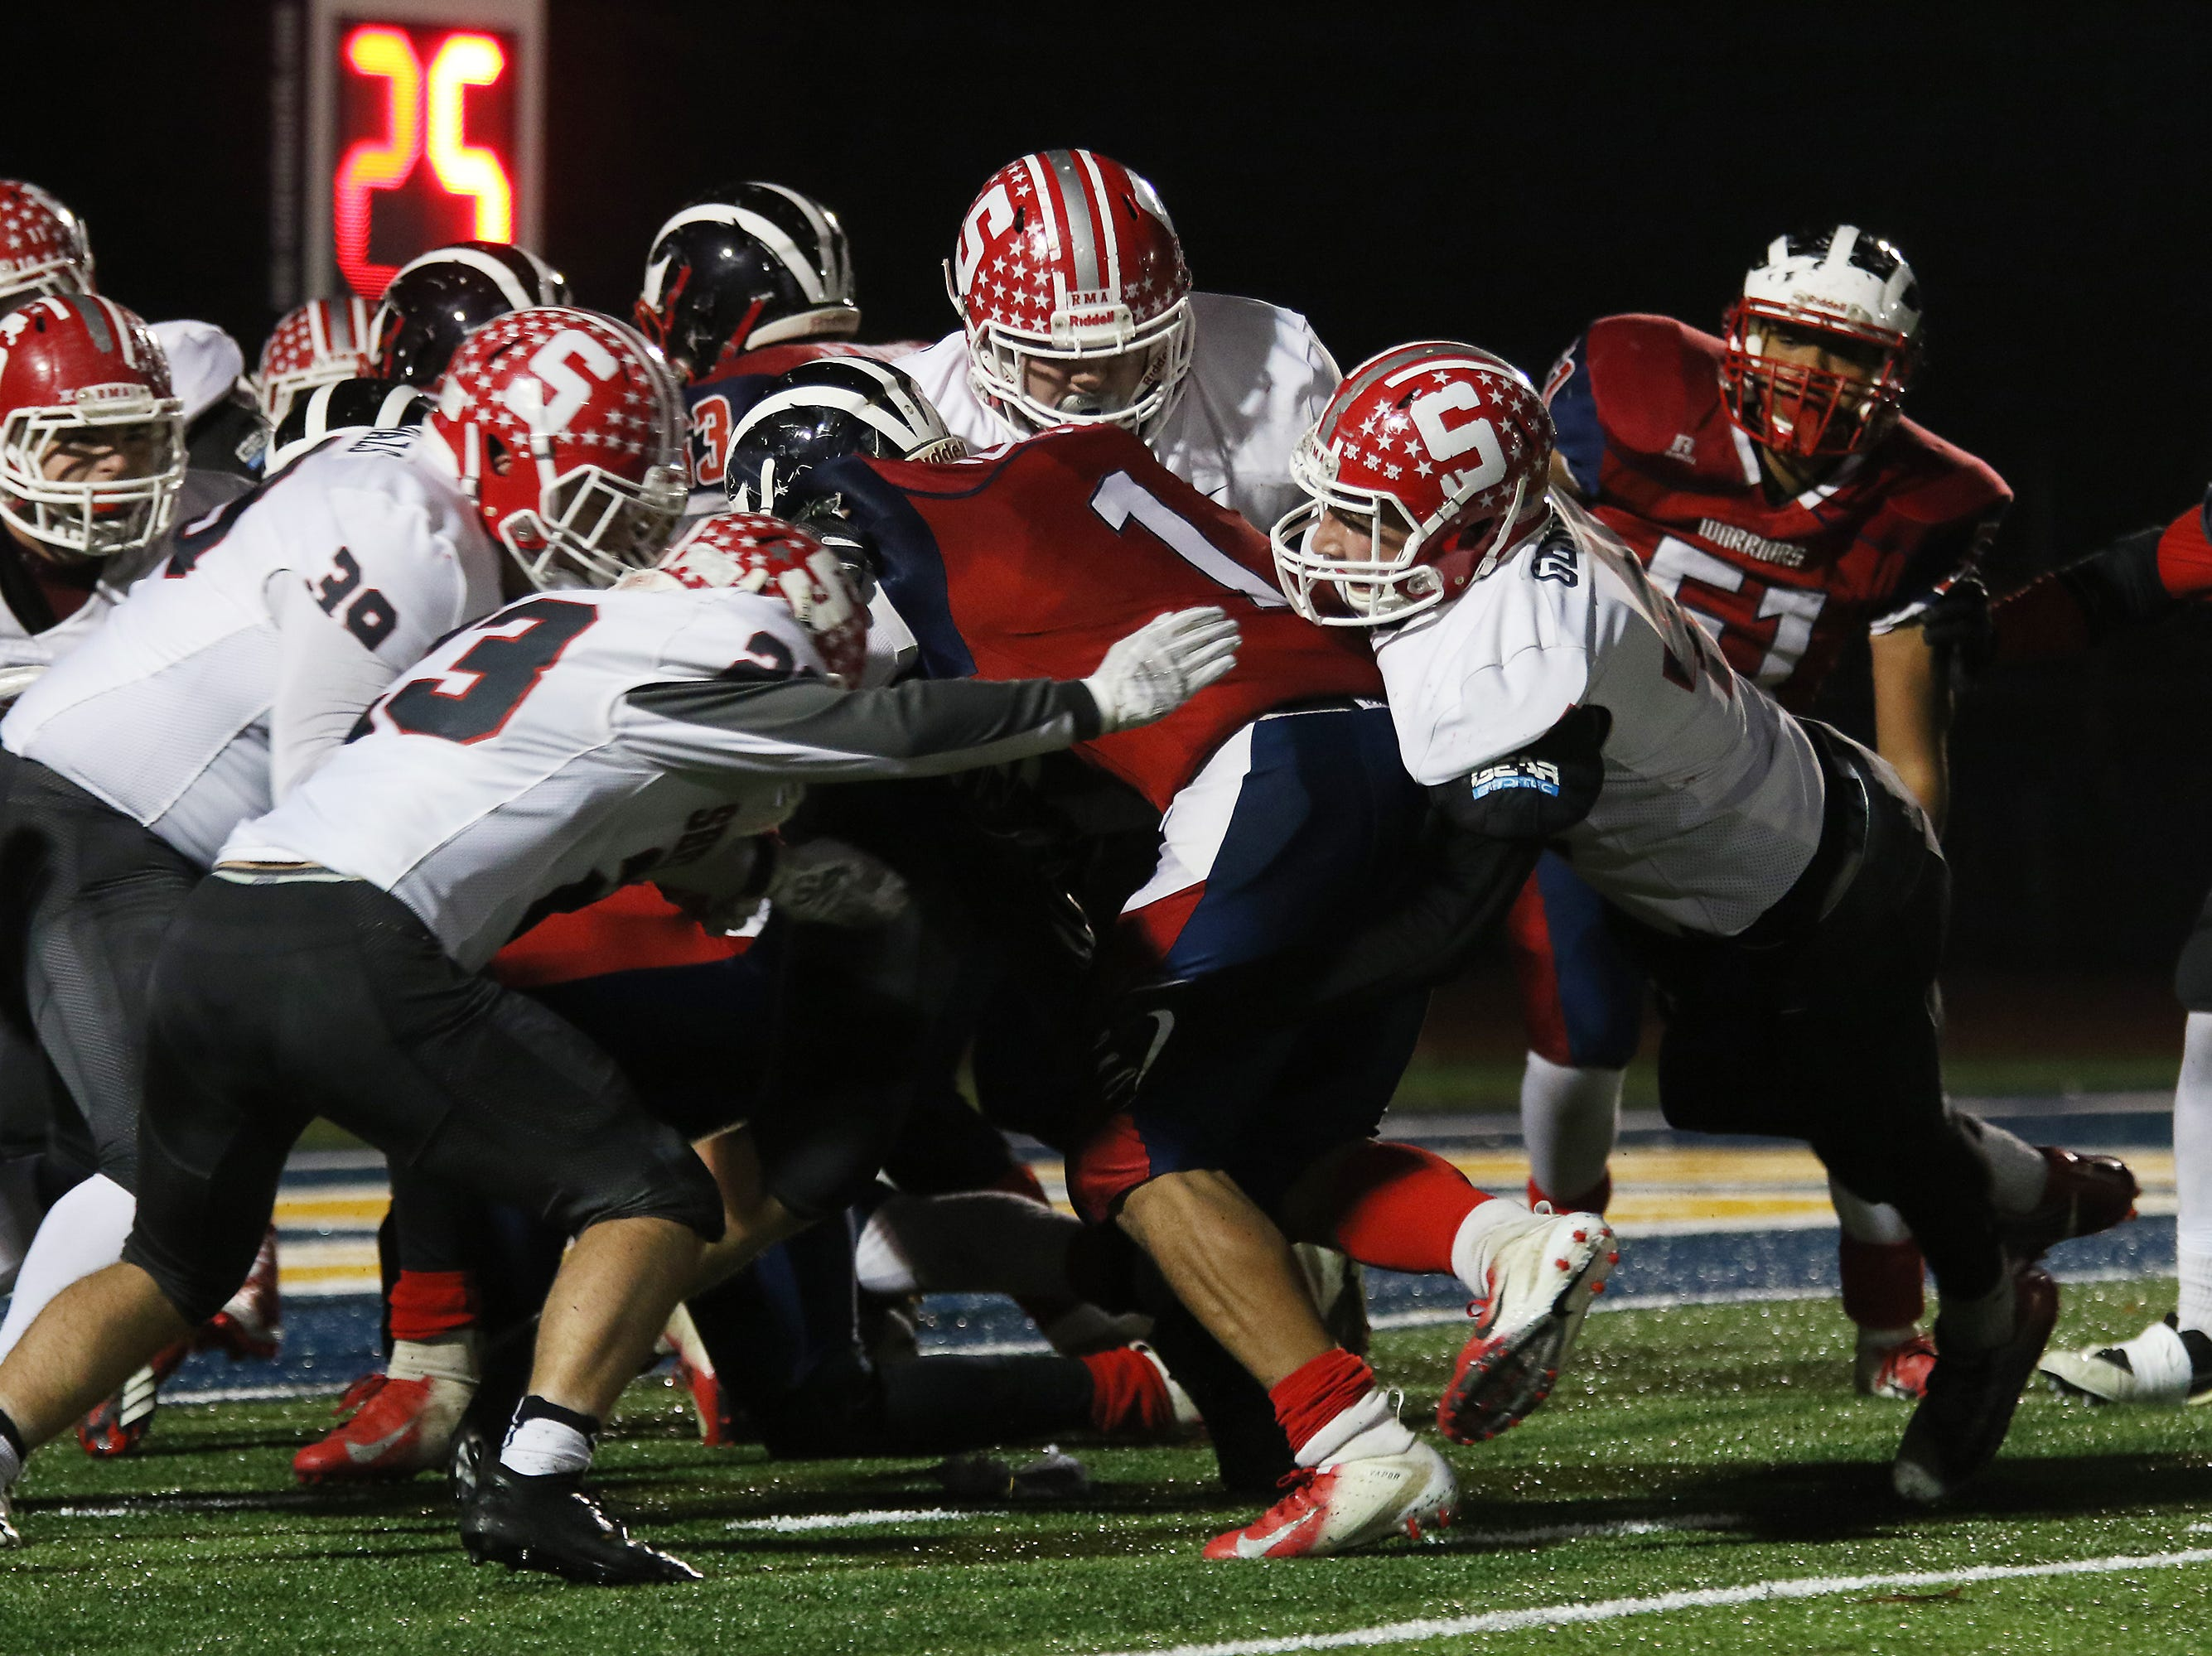 Sheridan defenders keep an Eastmoor ball carrier out of the endzone.